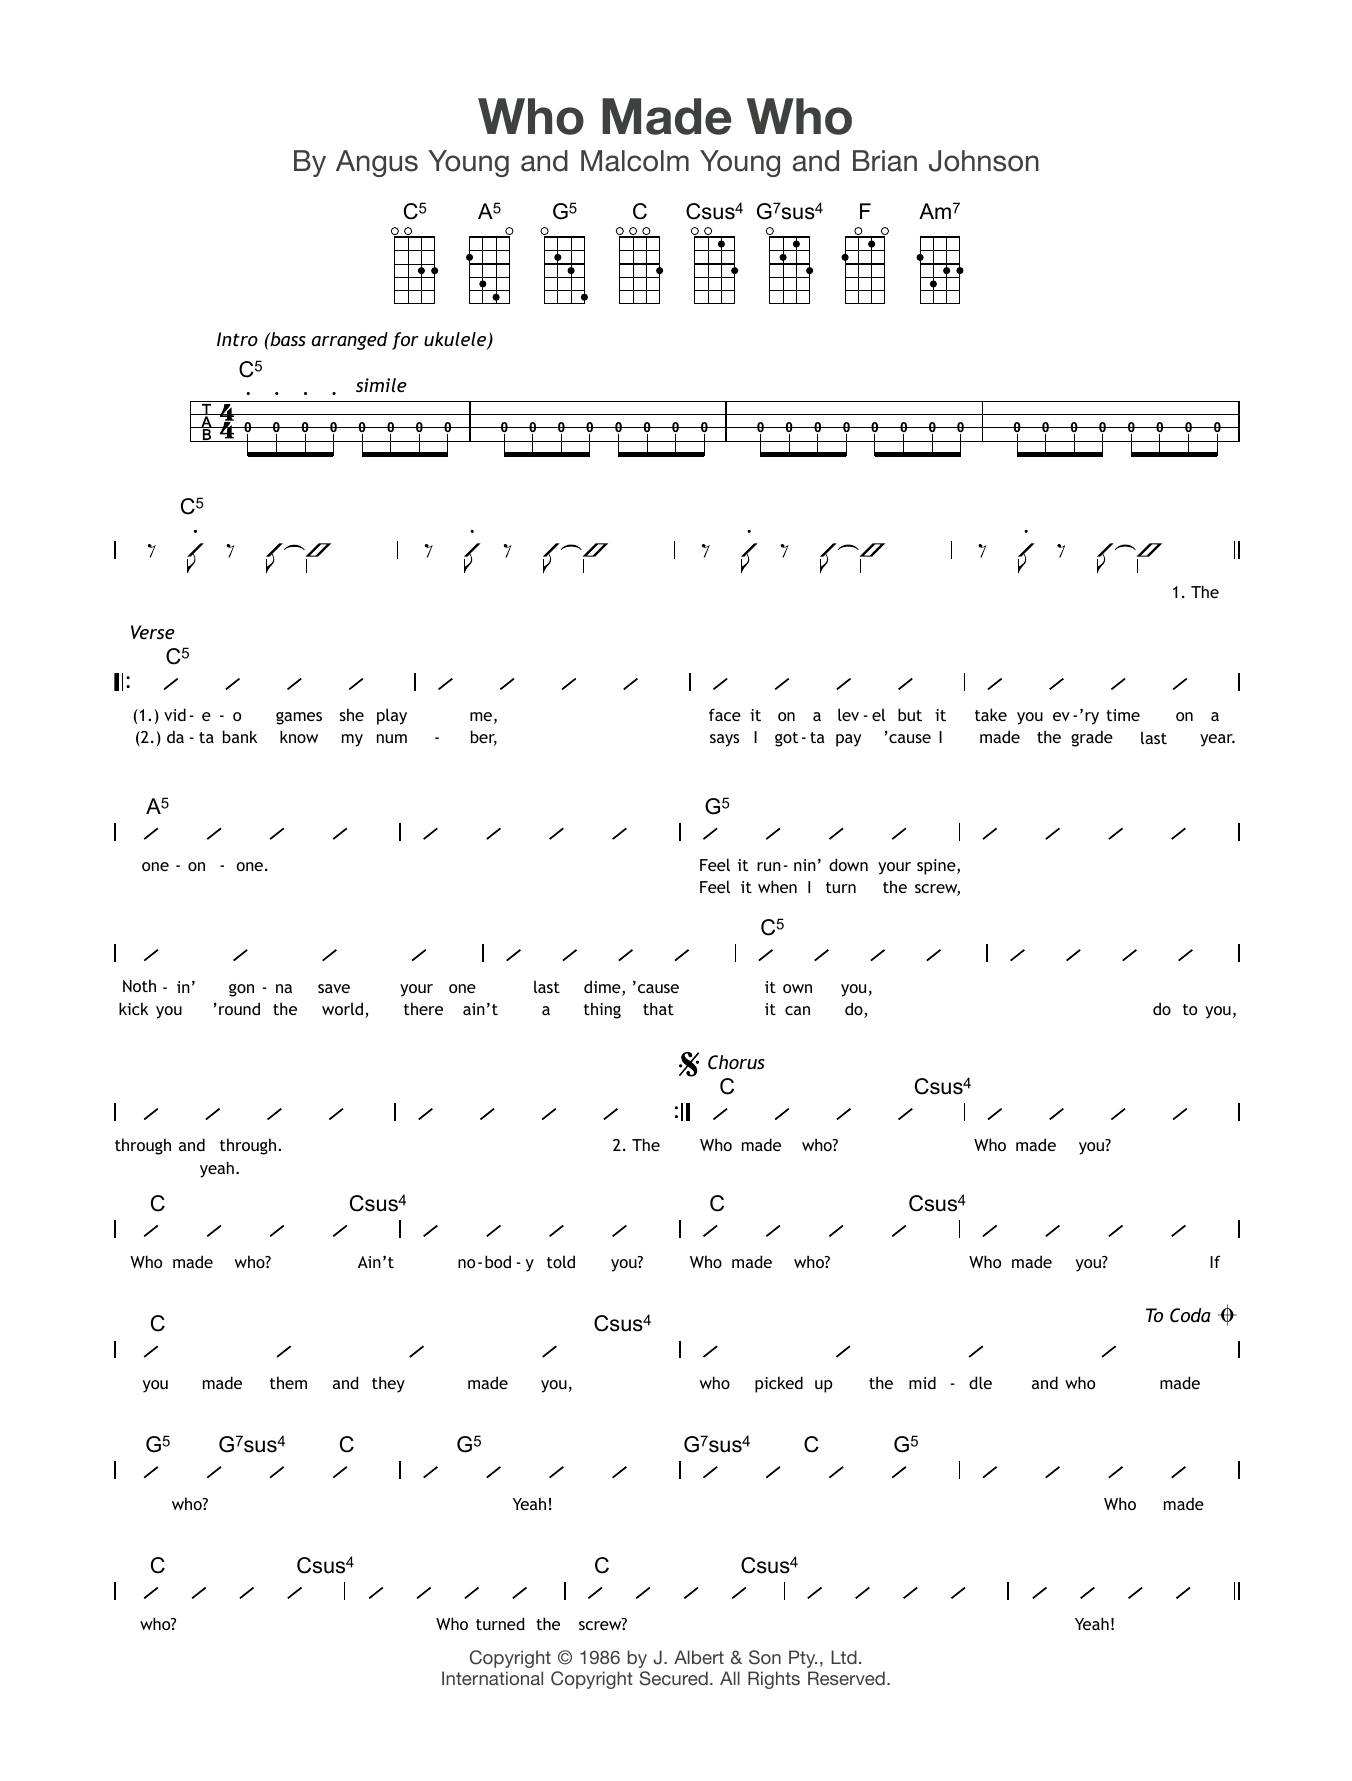 Who Made Who Sheet Music